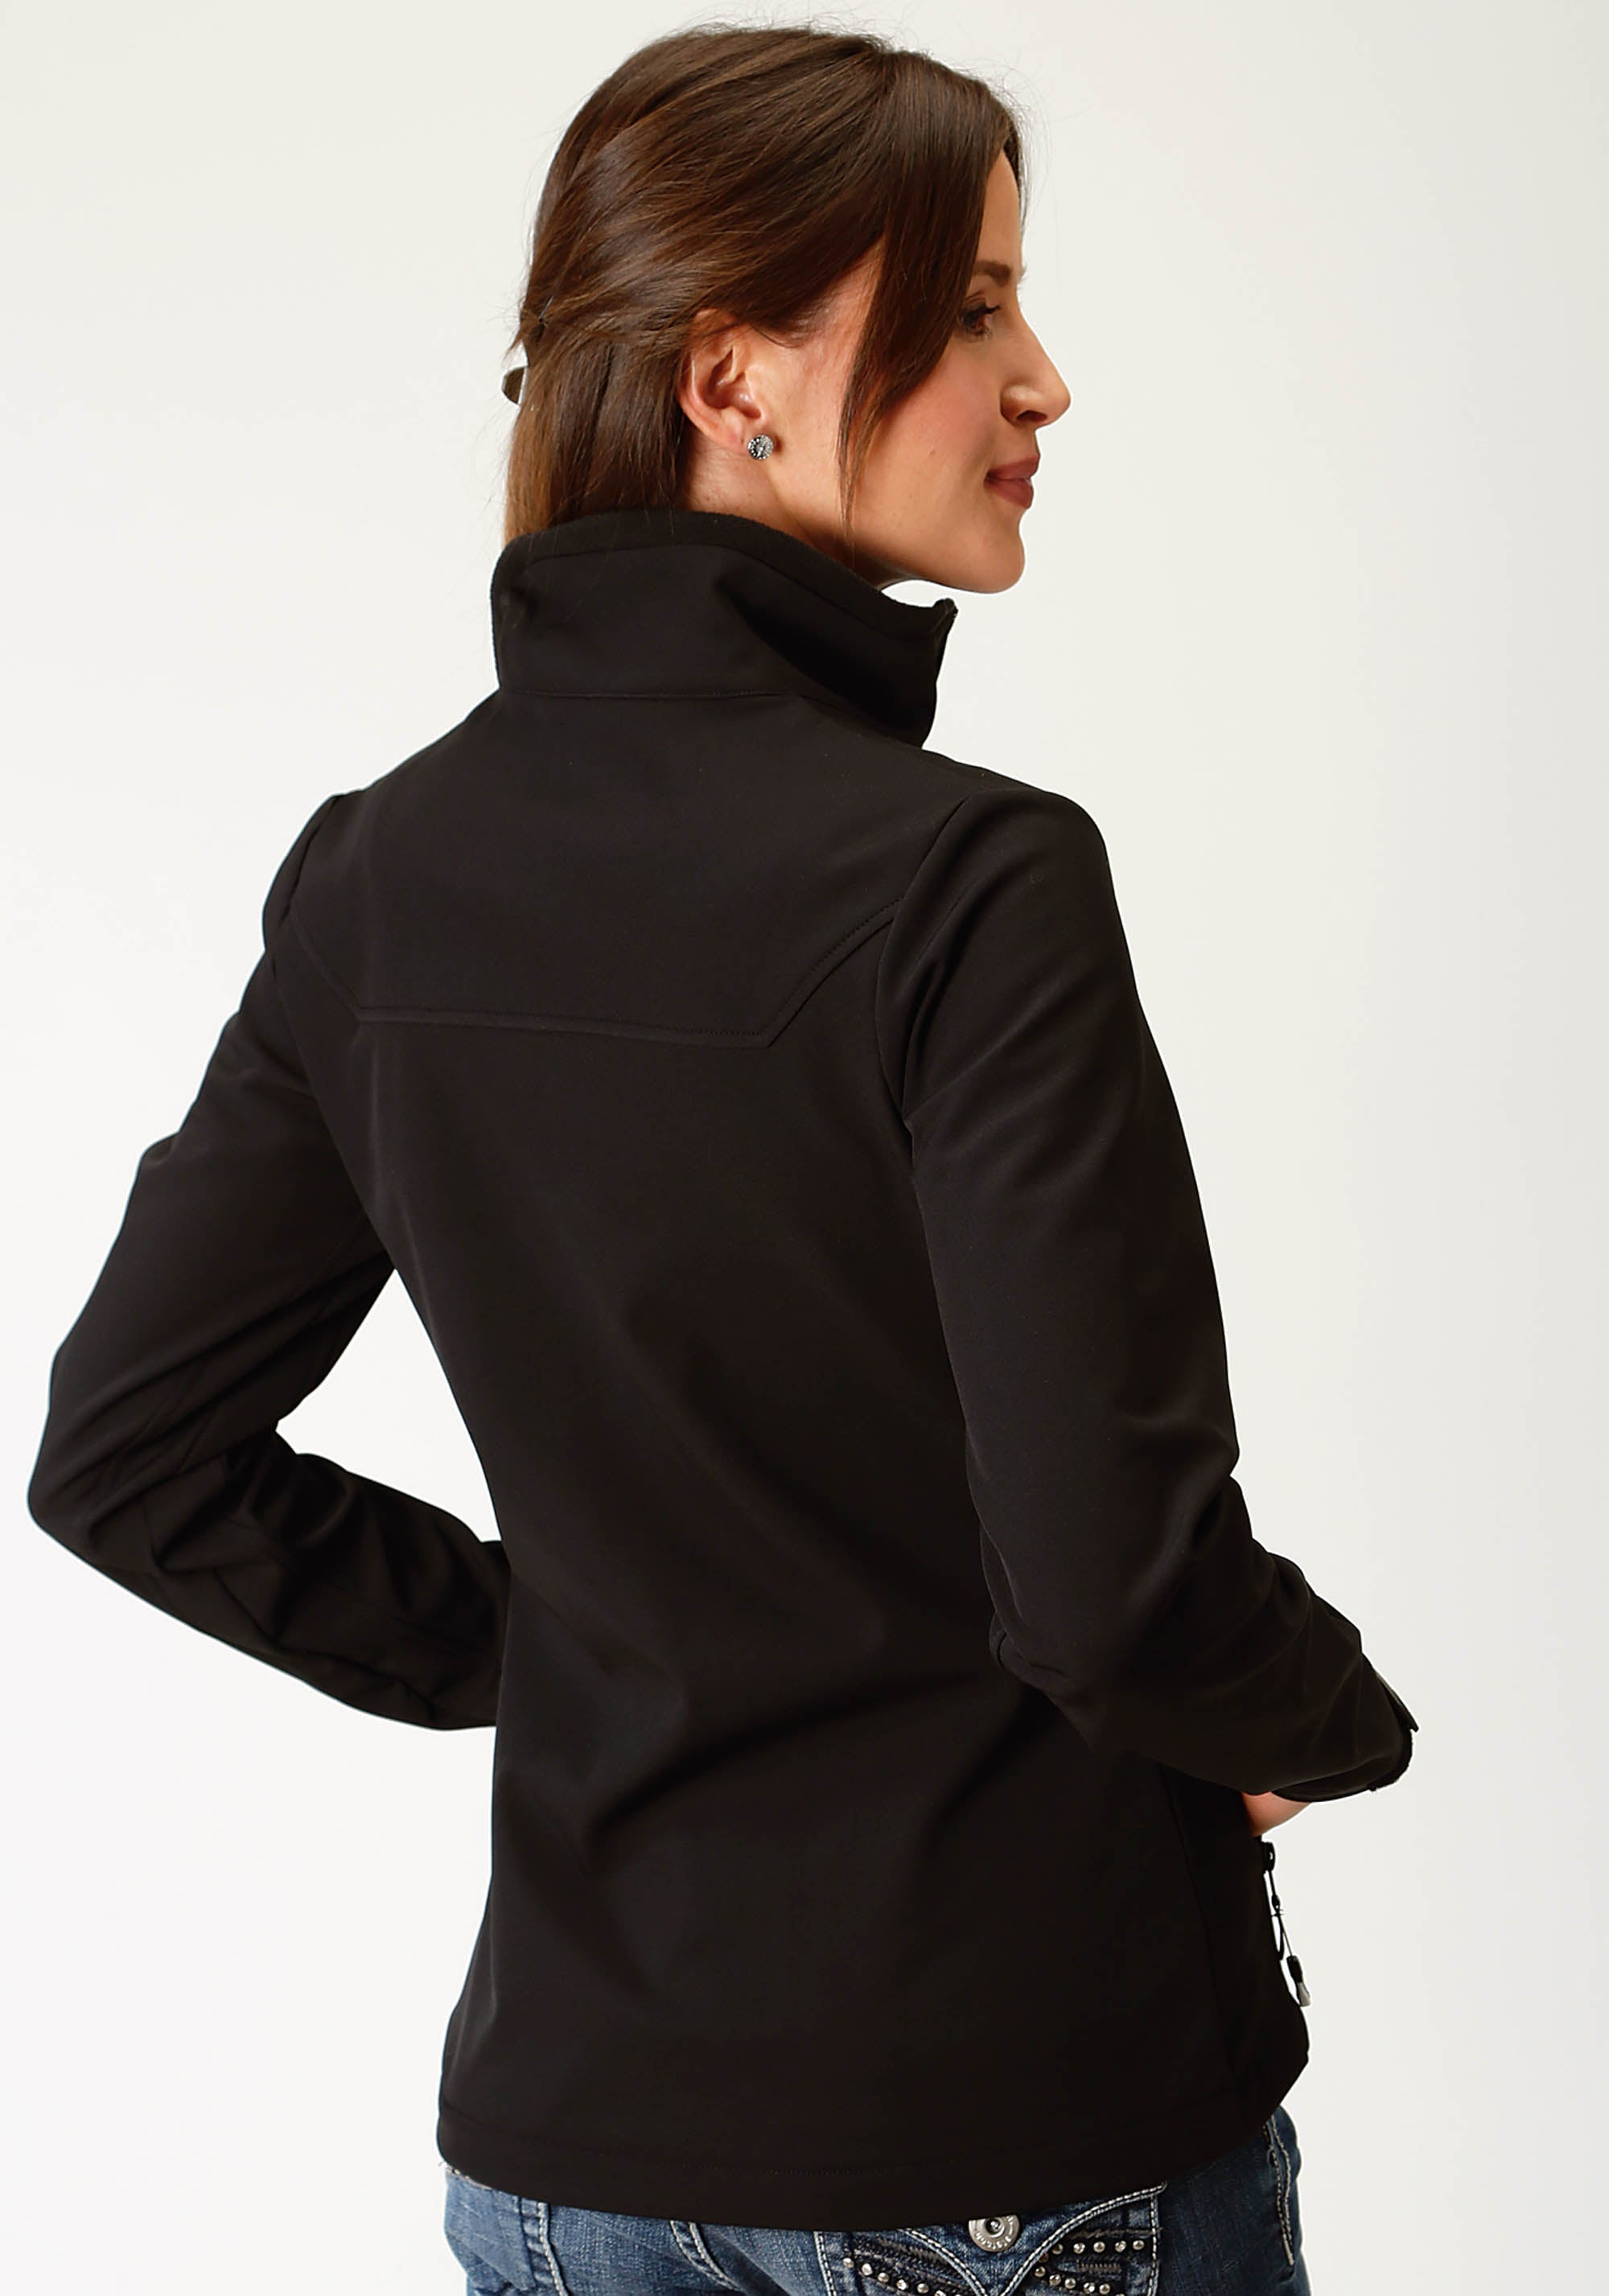 ROPER WOMENS BLACK BONDED SOFTSHELL W/BLACK FLEECE JACKET ROPER OUTERWEAR- LADIES JACKET